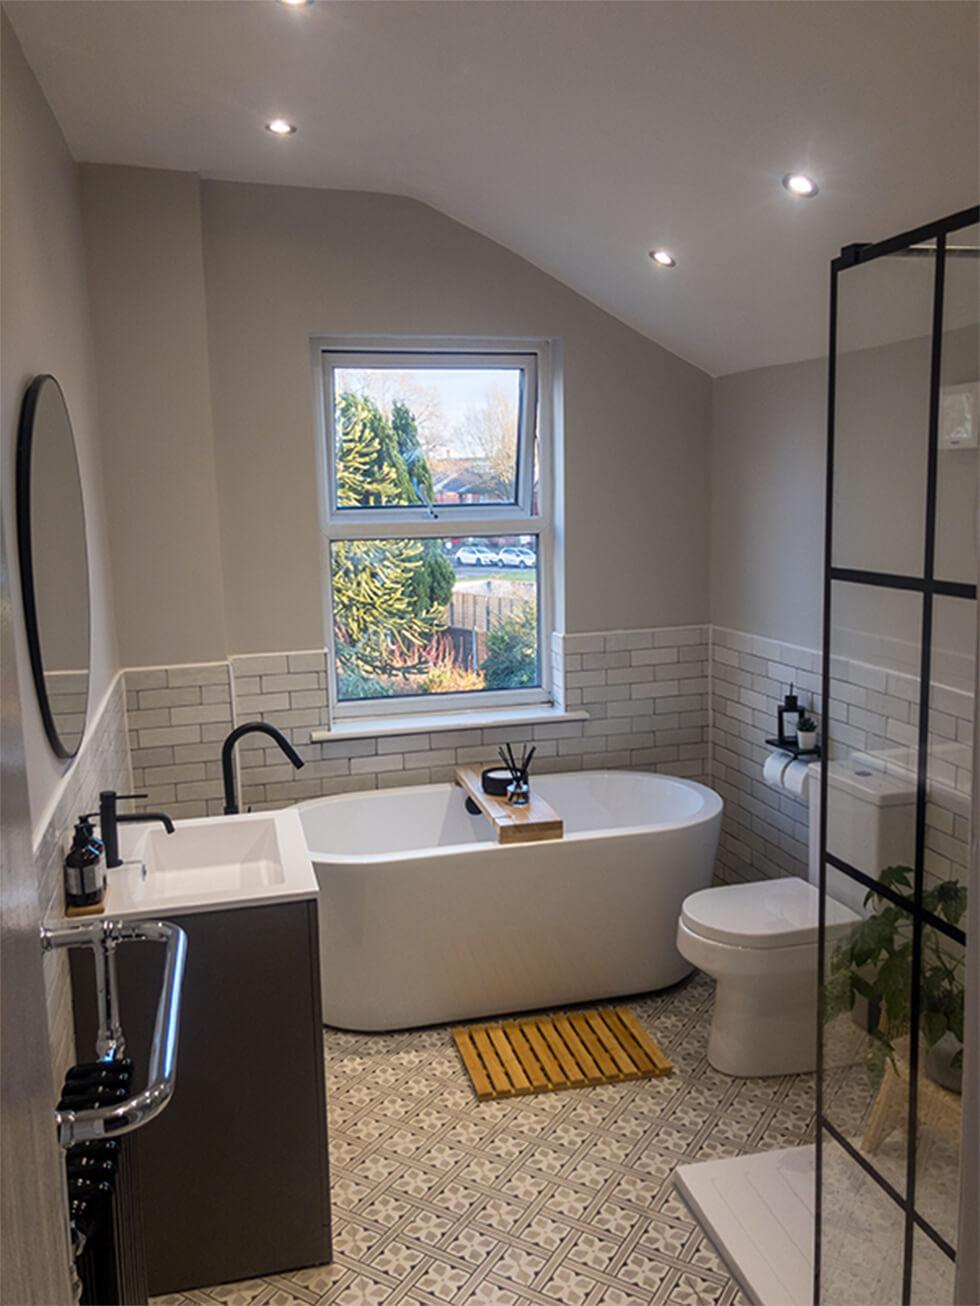 Master bathroom with white bathtub, tiles and black accents